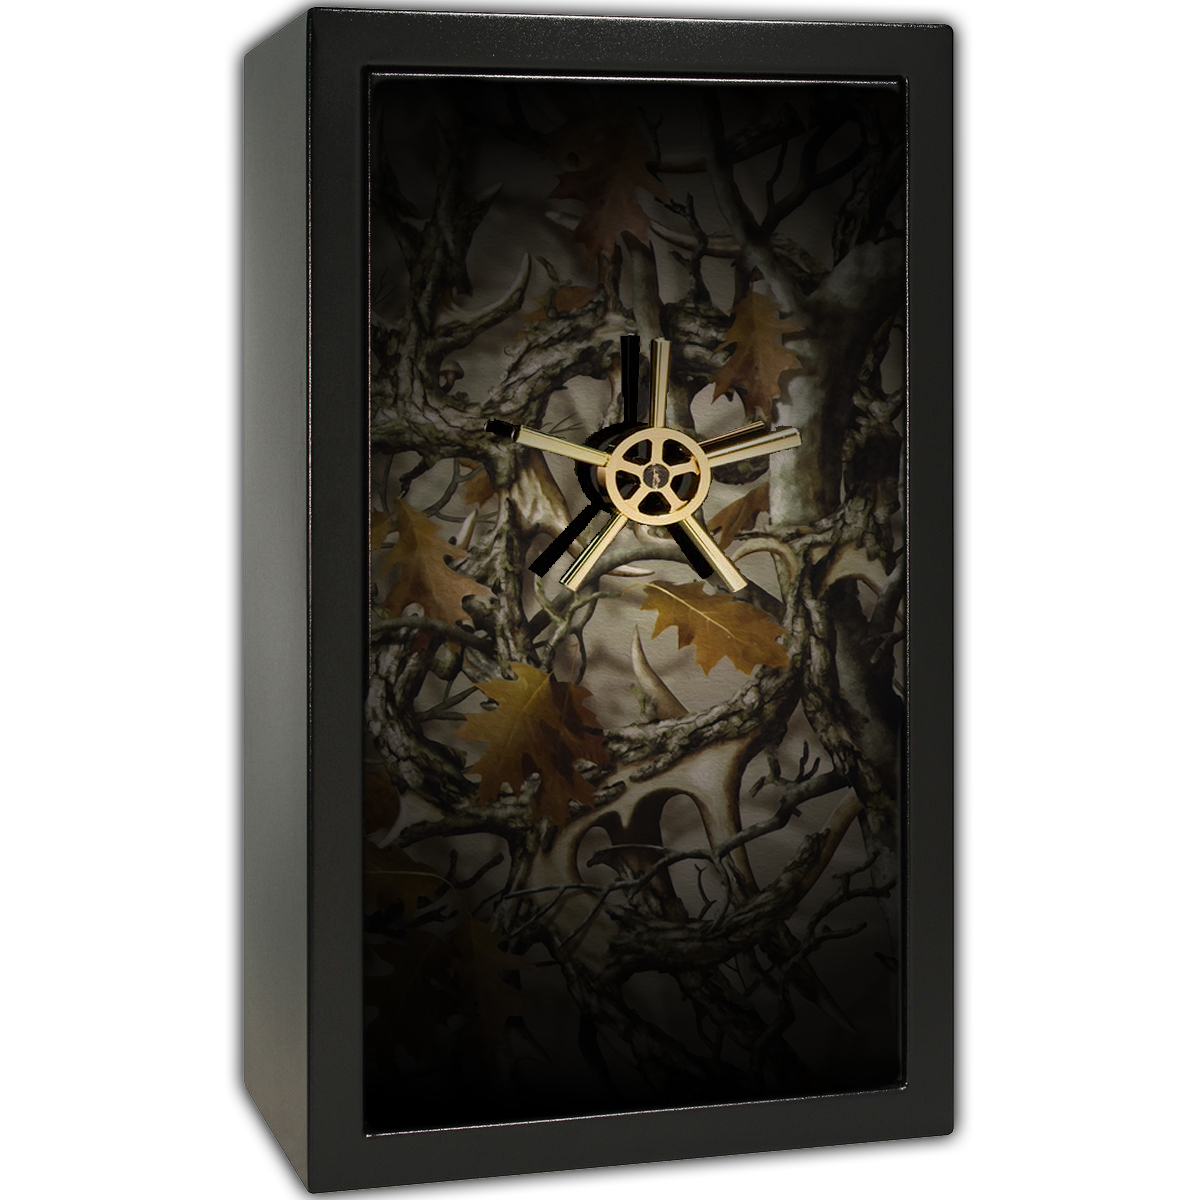 Gun Safe Decal - Large Camouflage Antlers